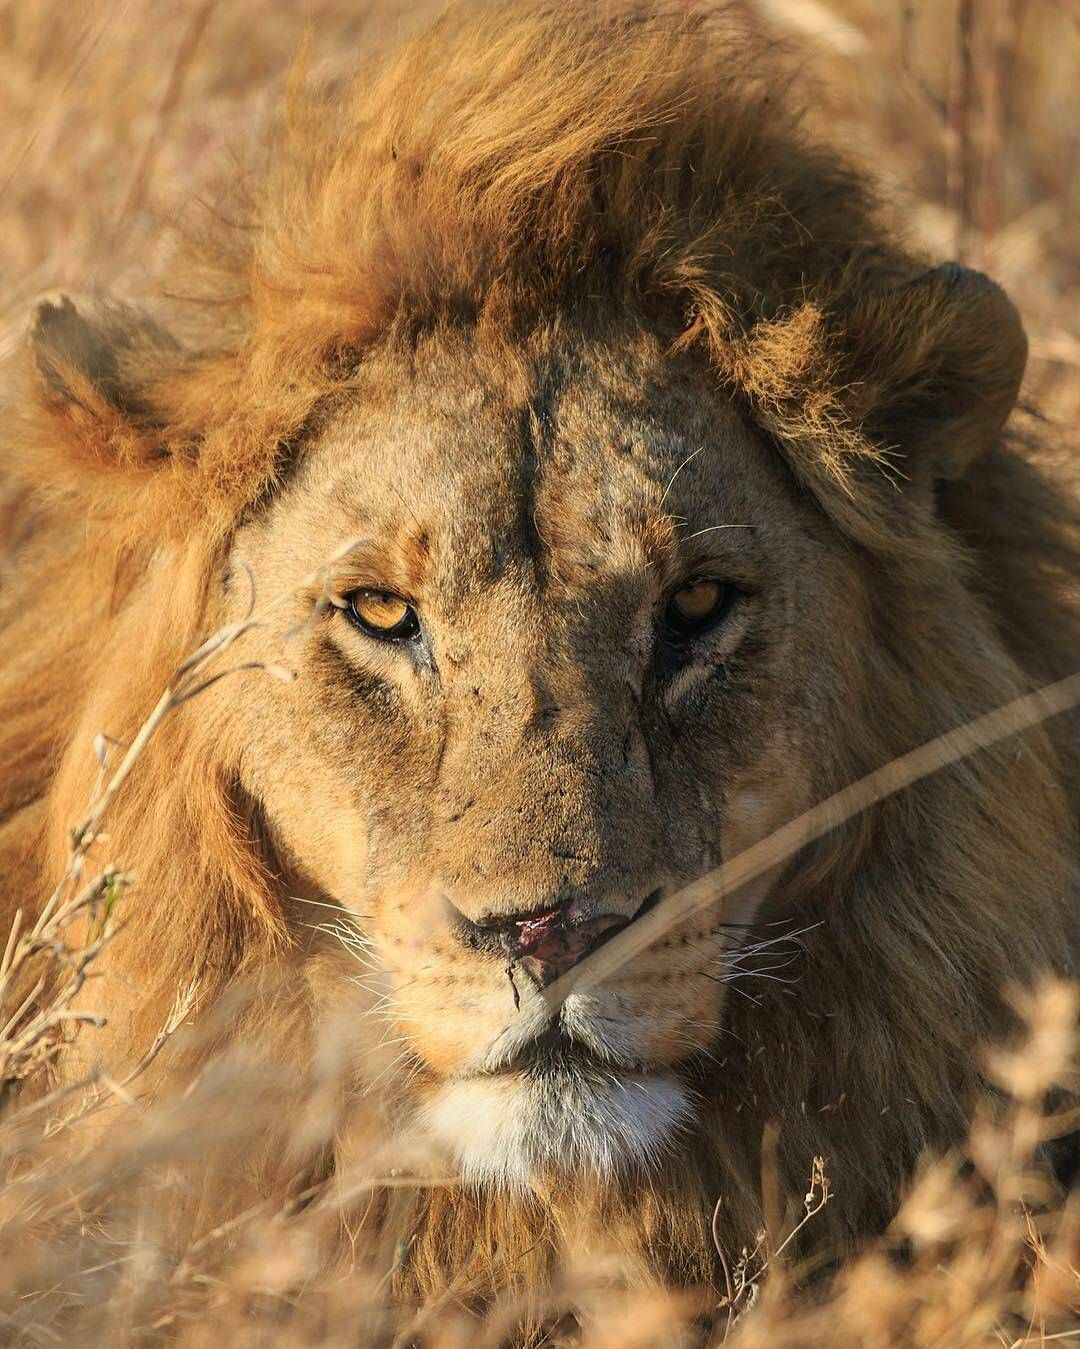 Photo By Ashleyainsborough In The Morning Sun A Lion